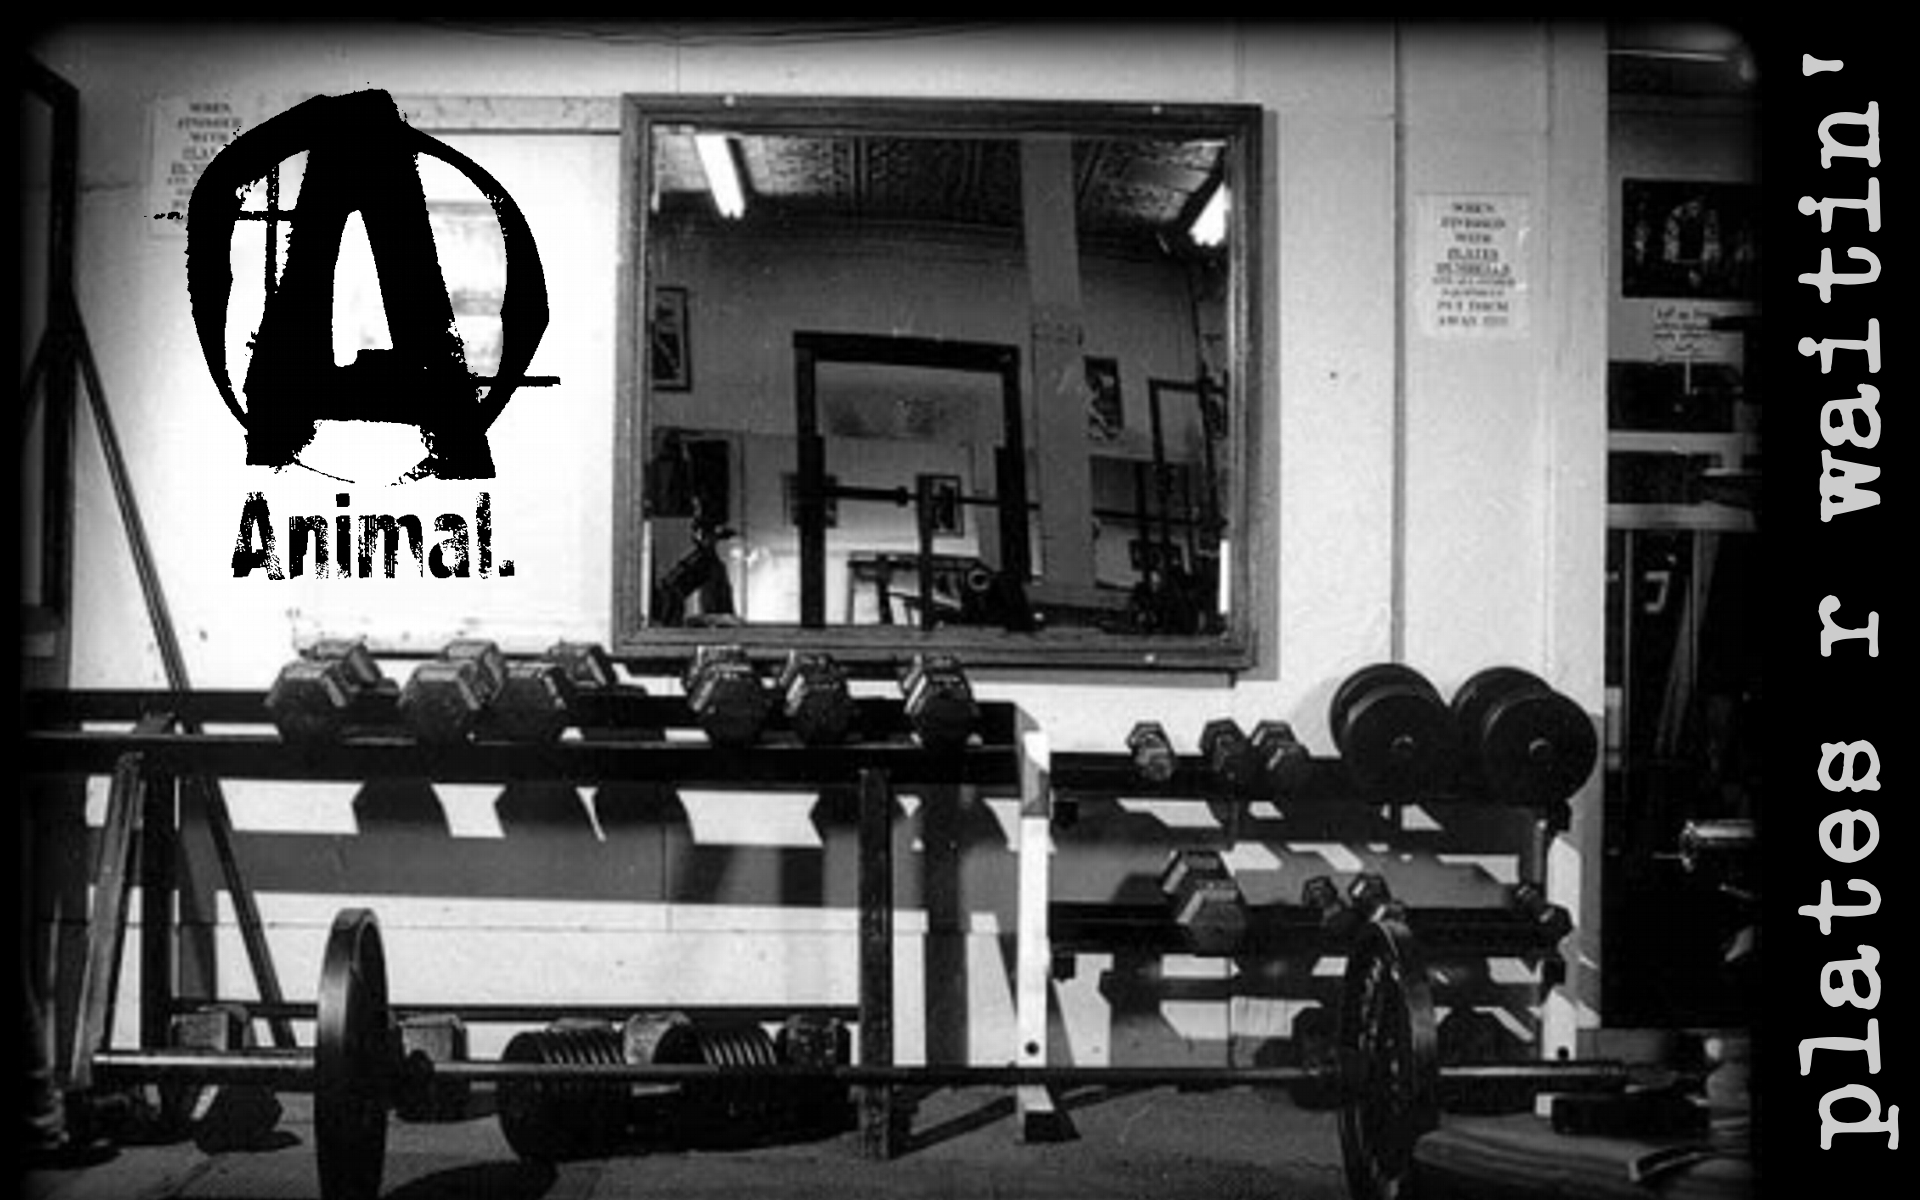 46 powerlifting motivational wallpapers on wallpapersafari - Animal pak motivational quotes ...